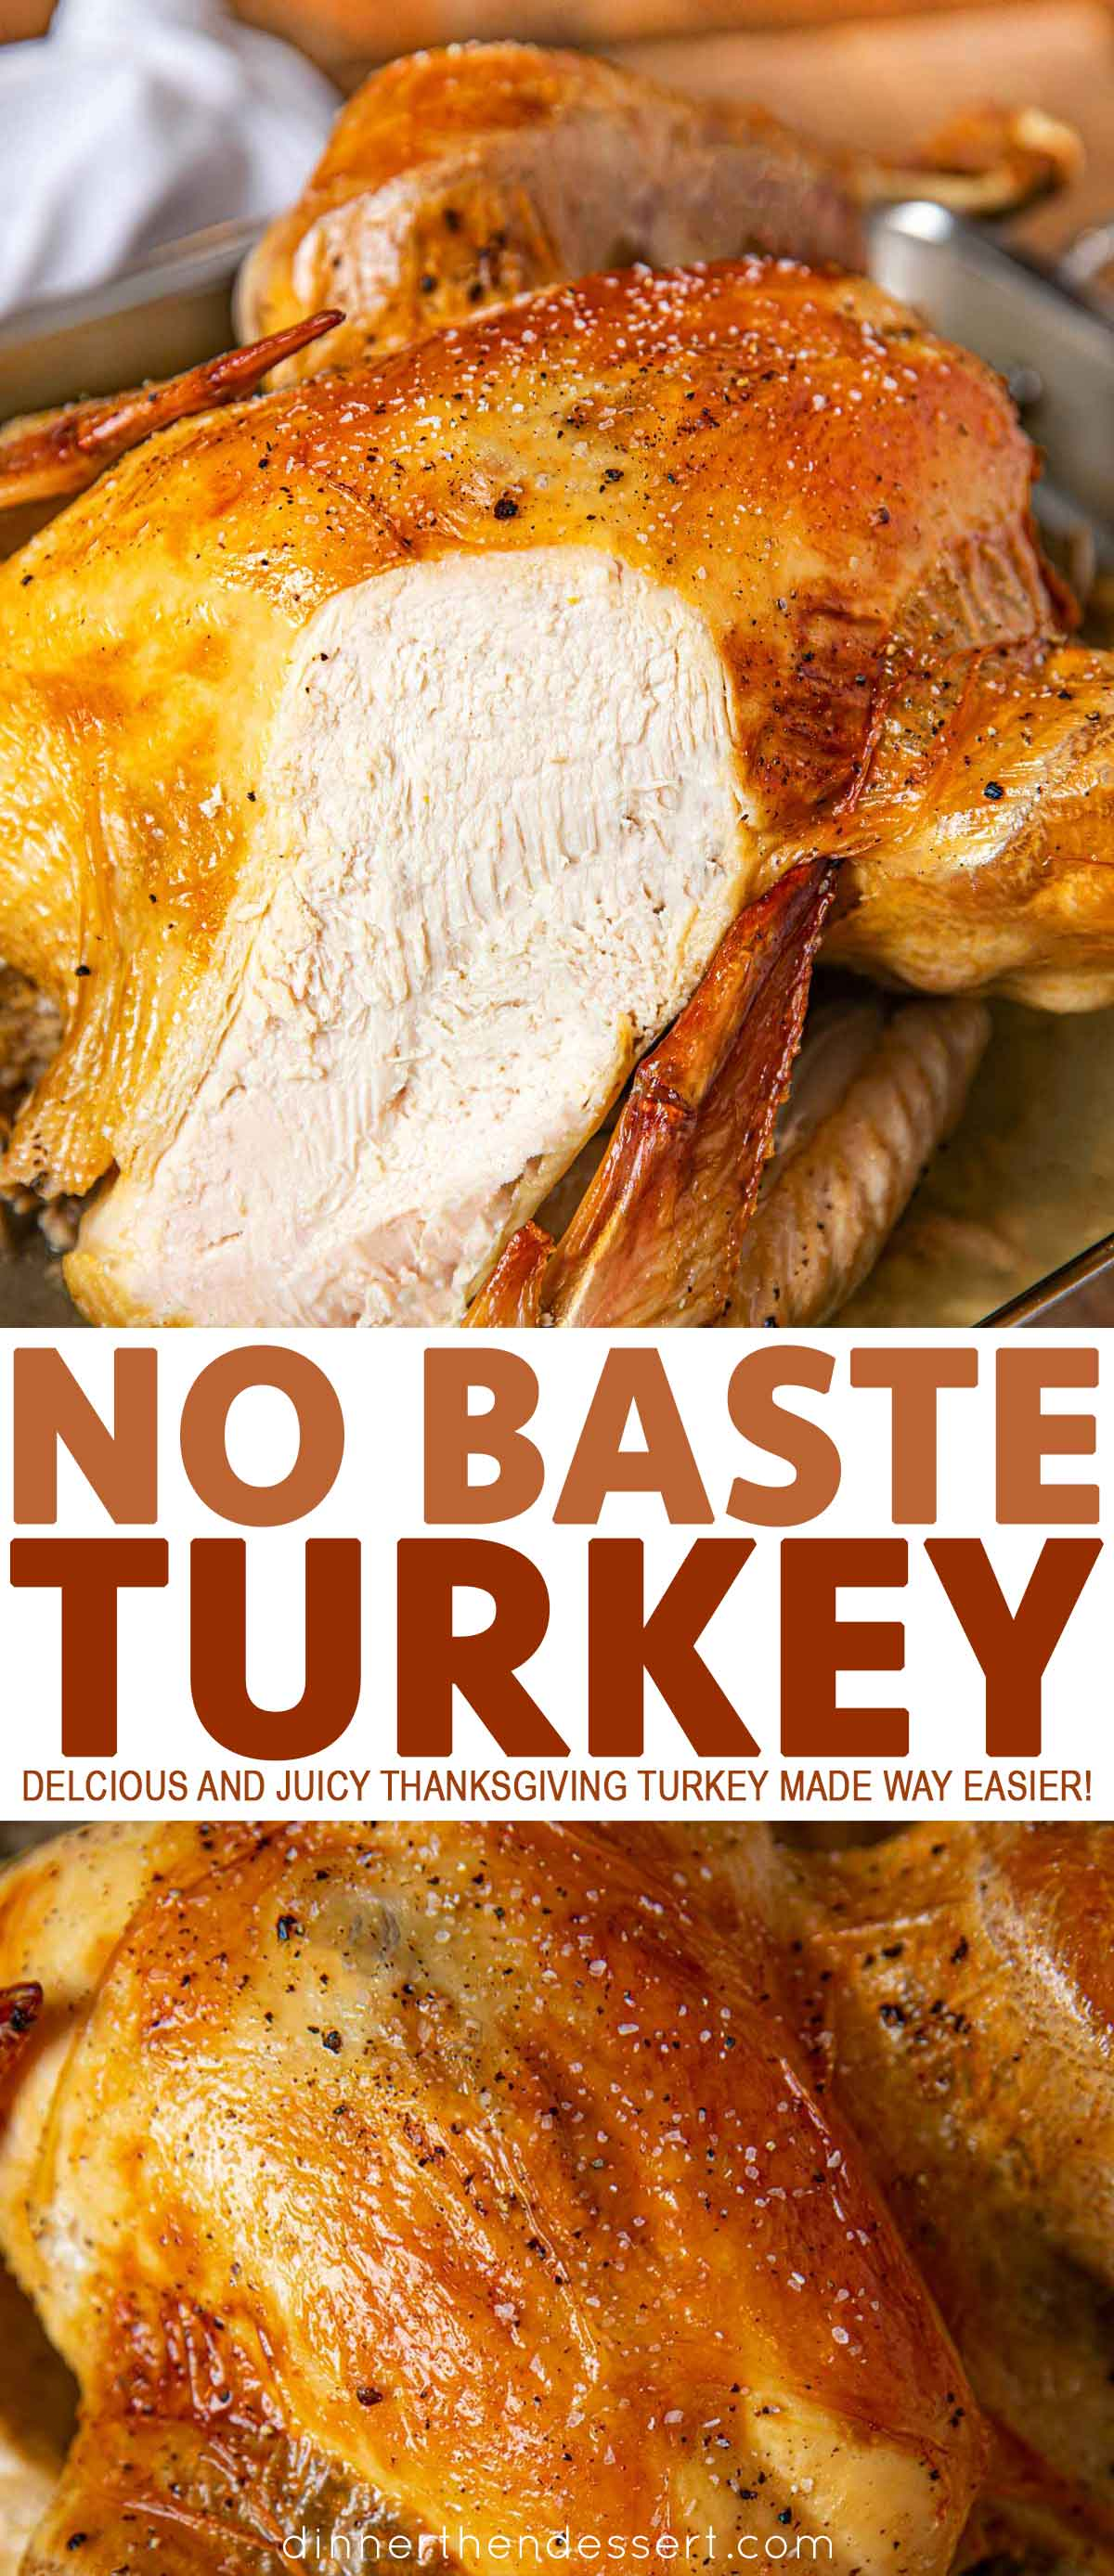 Collage Photos of No Baste Turkey